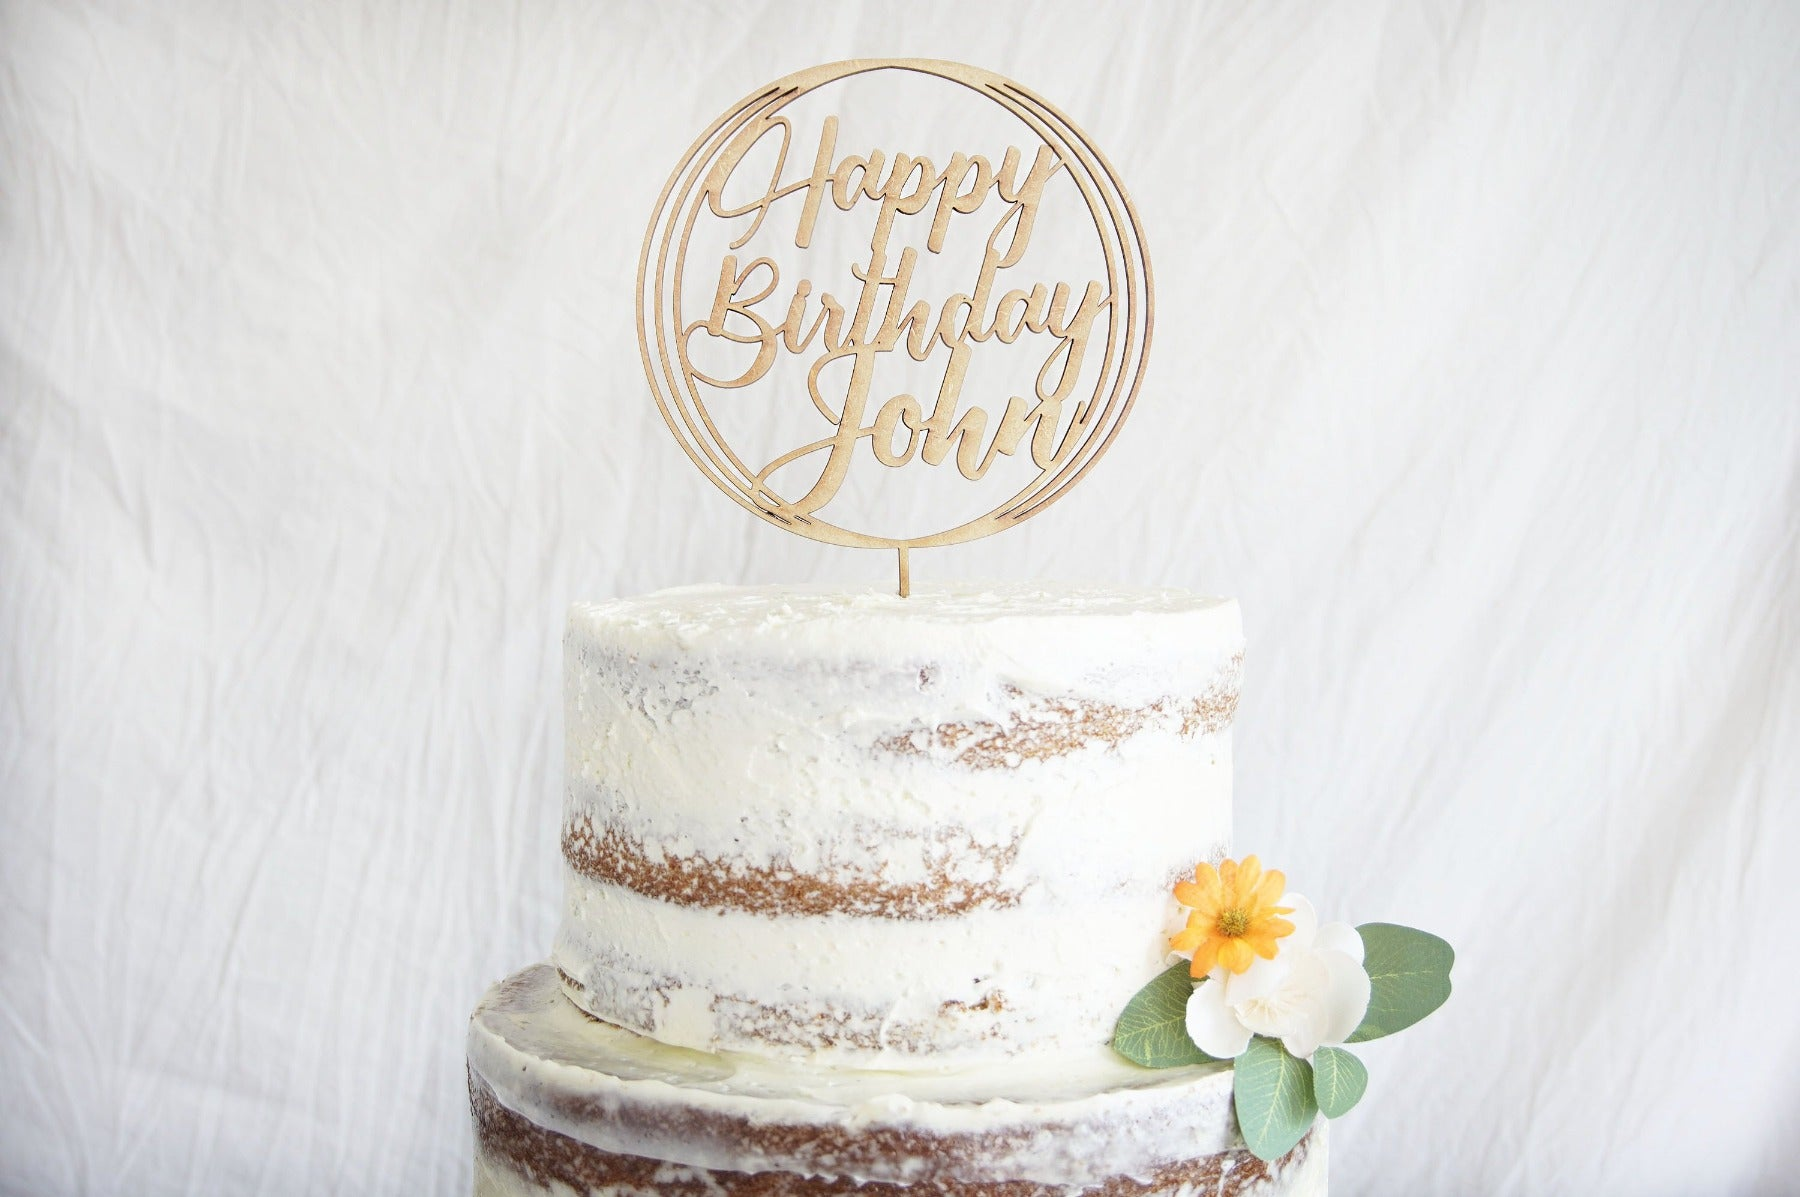 Happy Birthday Cake Topper | Custom Birthday Cake Topper | Personalized Name Cake Topper | Gold, Silver, Rose Gold, & Natural Wood Topper